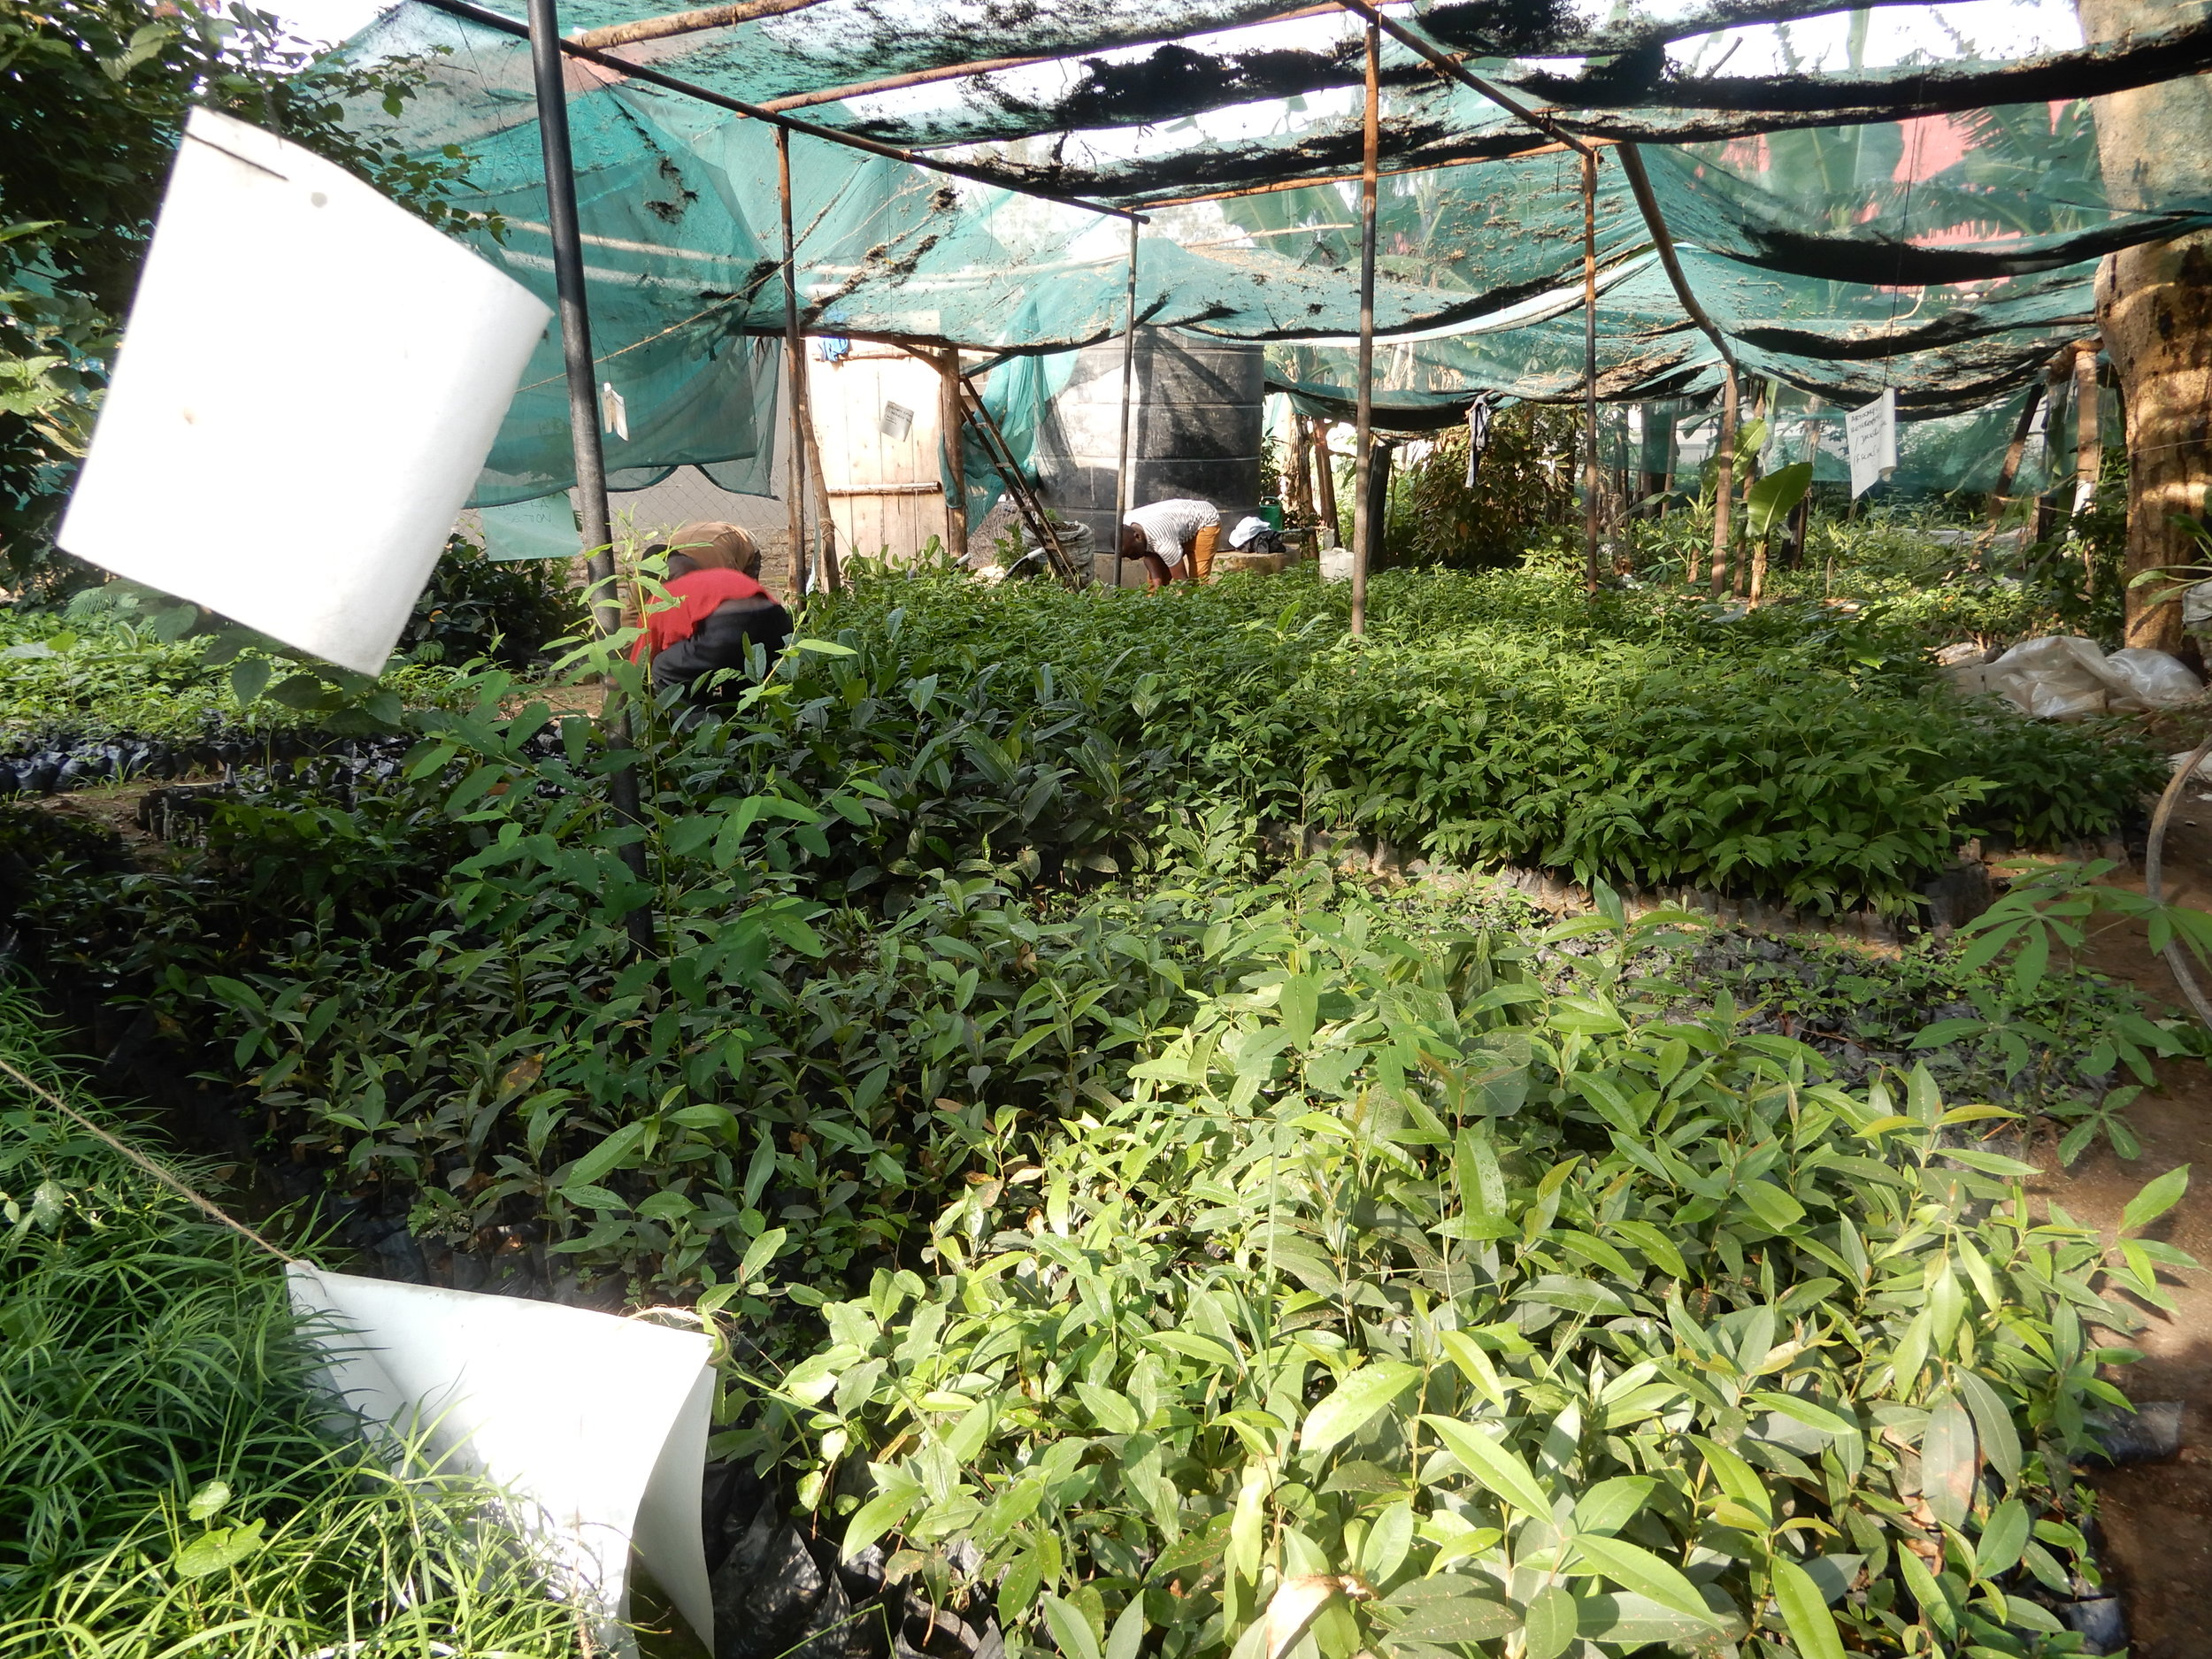 This photo shows part of the tree nursery established. The tree nursery raises indigenous tree species for restoring our forest landscape.